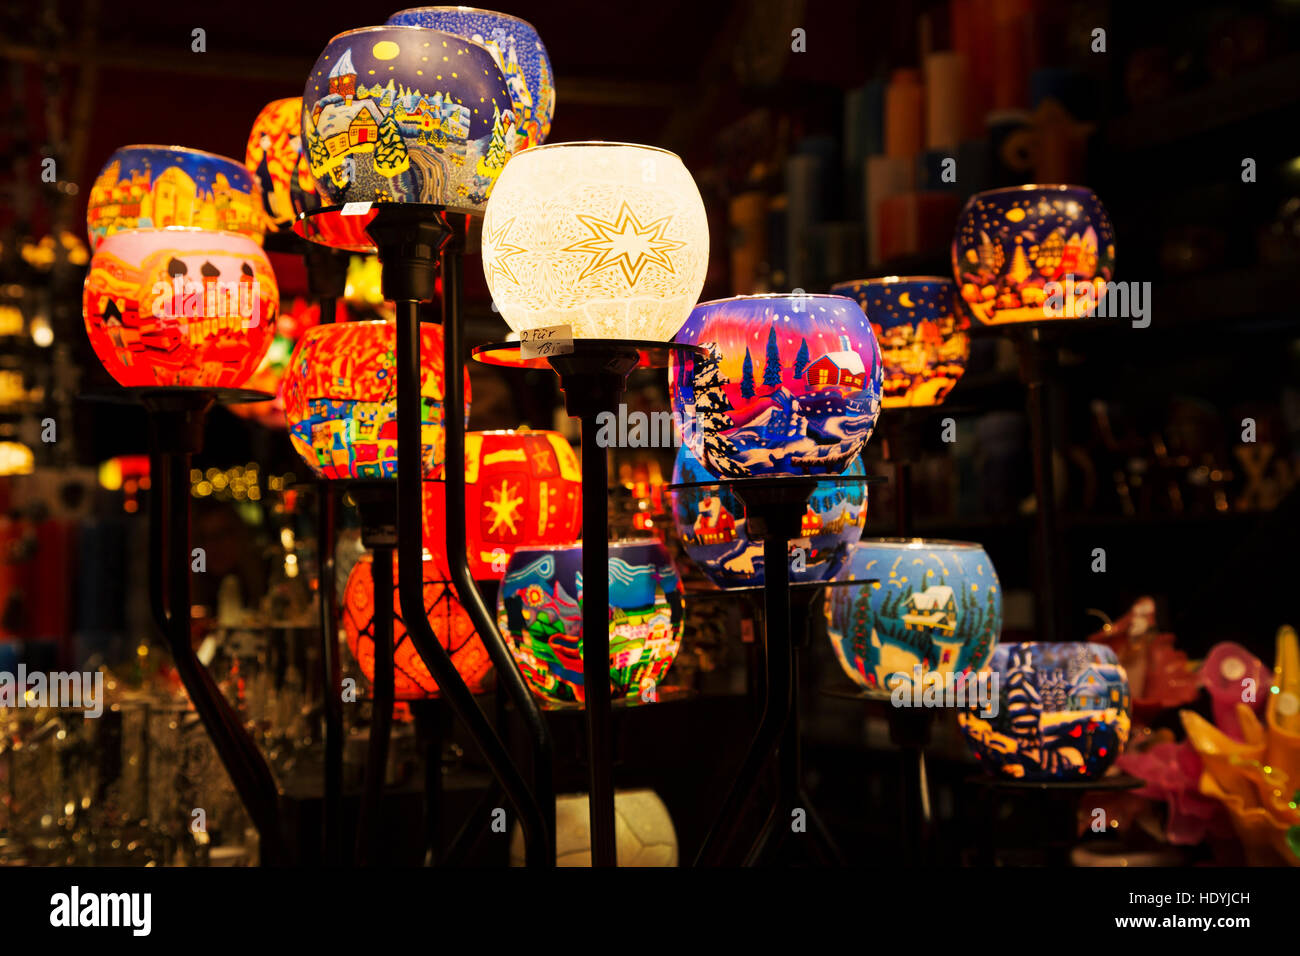 Candle holders at the Baroque Christmas Market at Ludwigsburg in Baden-Wuerttemburg, Germany. The market is ranged - Stock Image